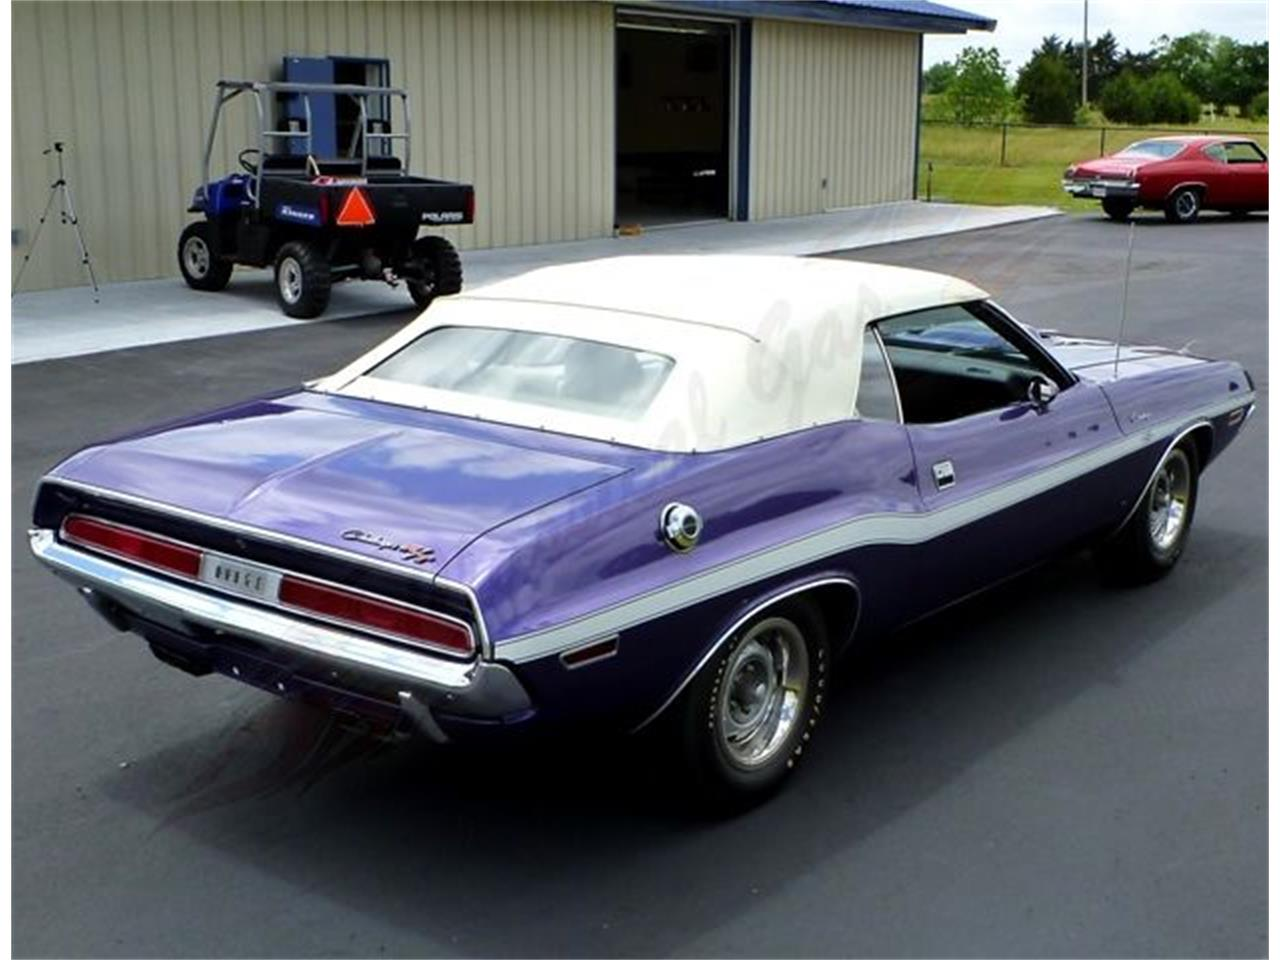 Large Picture of 1970 Challenger R/T - $189,500.00 Offered by Classical Gas Enterprises - LTOP